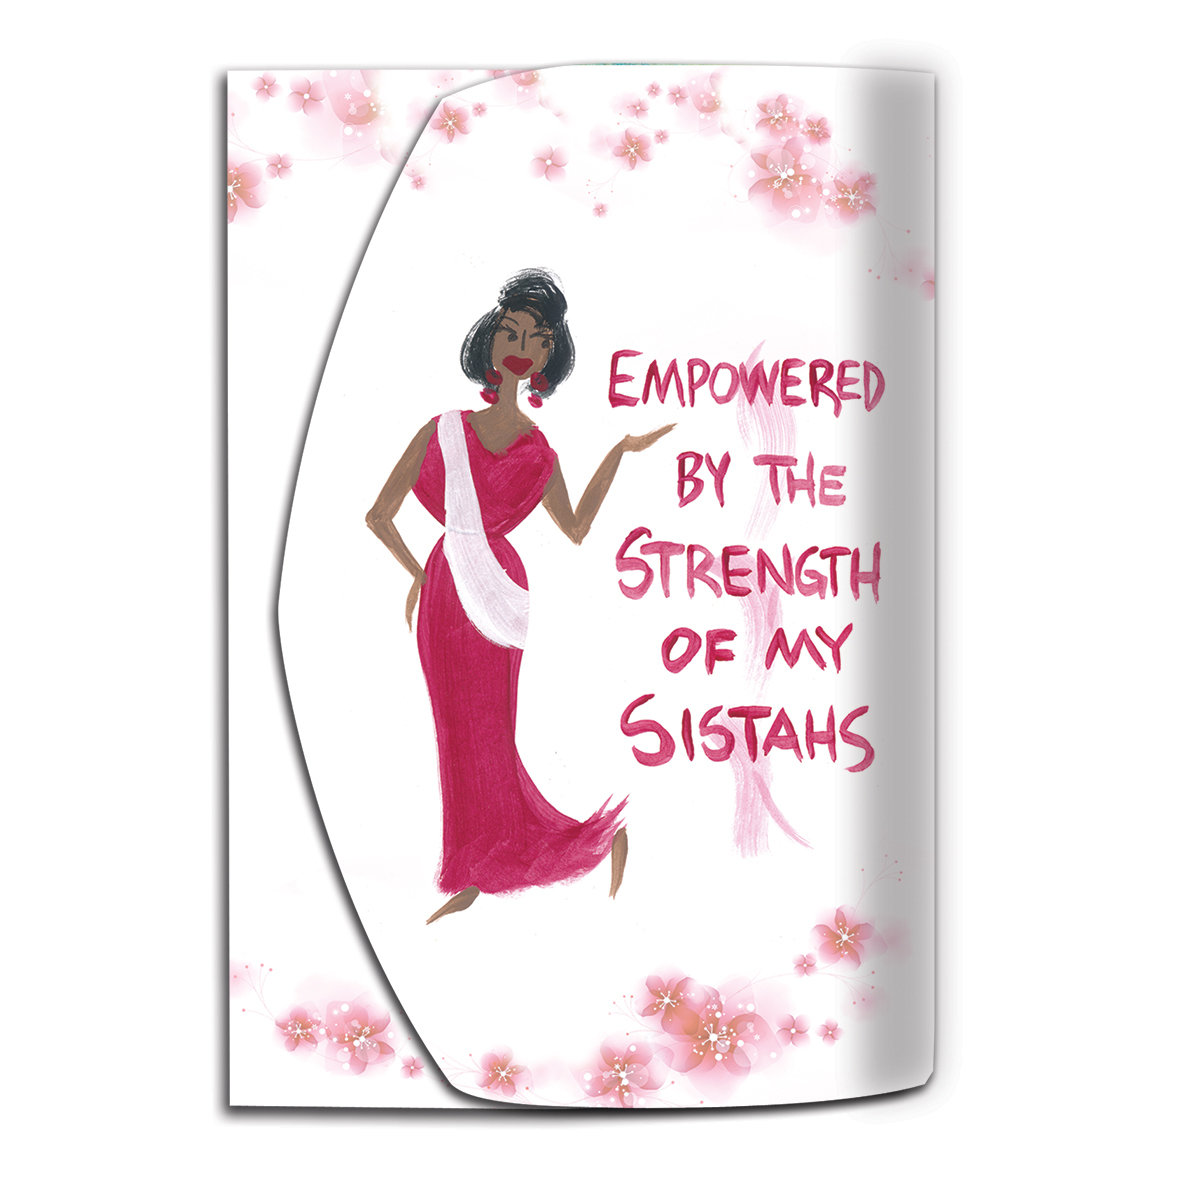 EMPOWERED BY THE STRENGHT OF MY SISTAHS